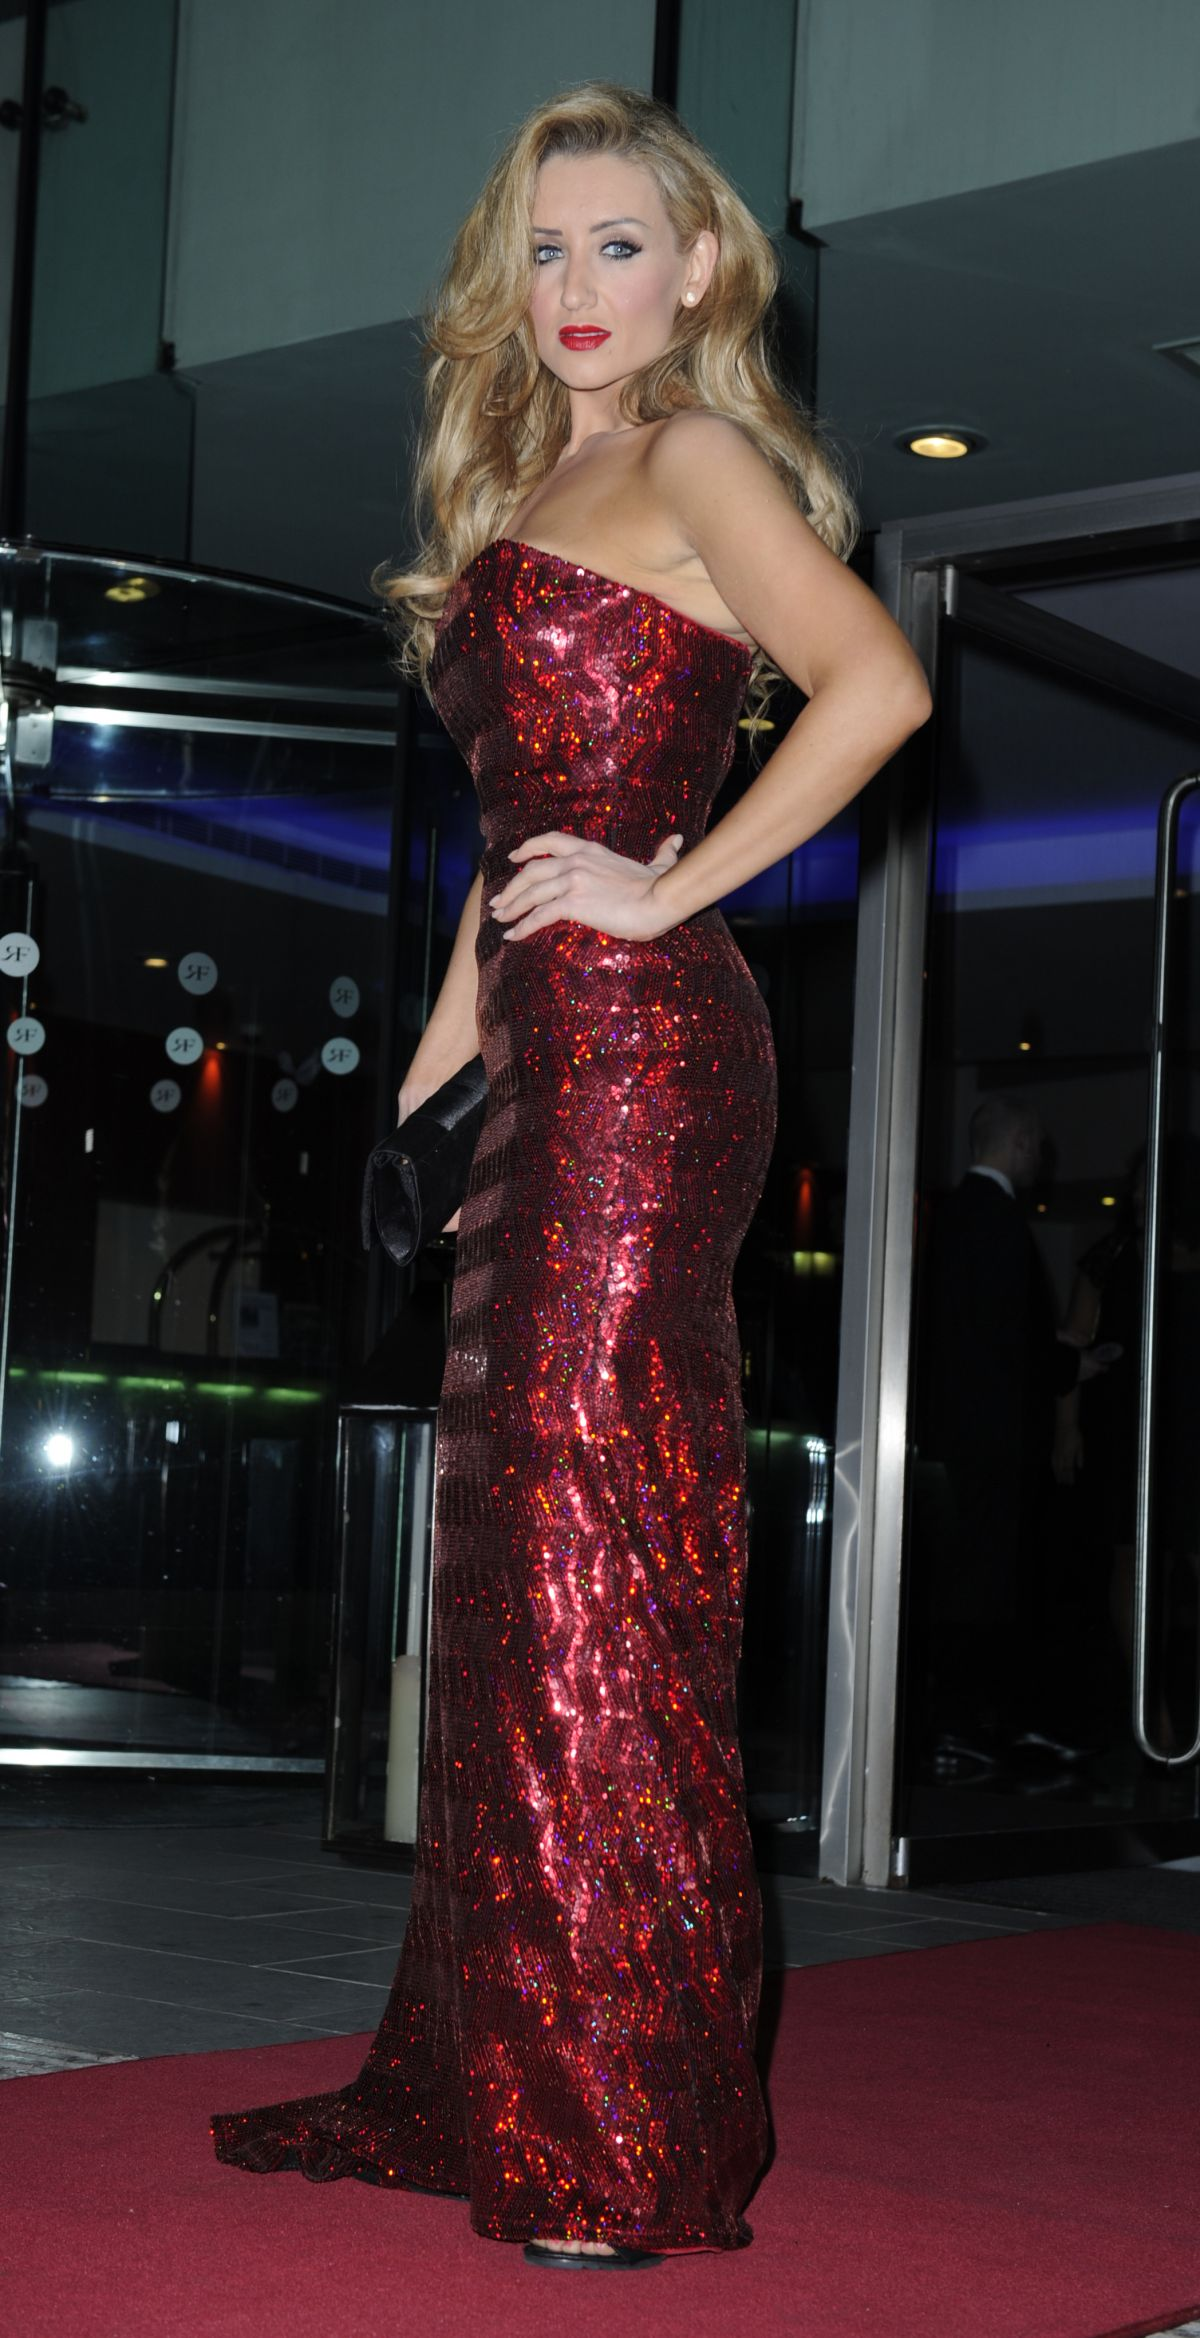 CATHERINE TYLDESLEY at The Mirror Ball at Lowry Hotel in Manchester